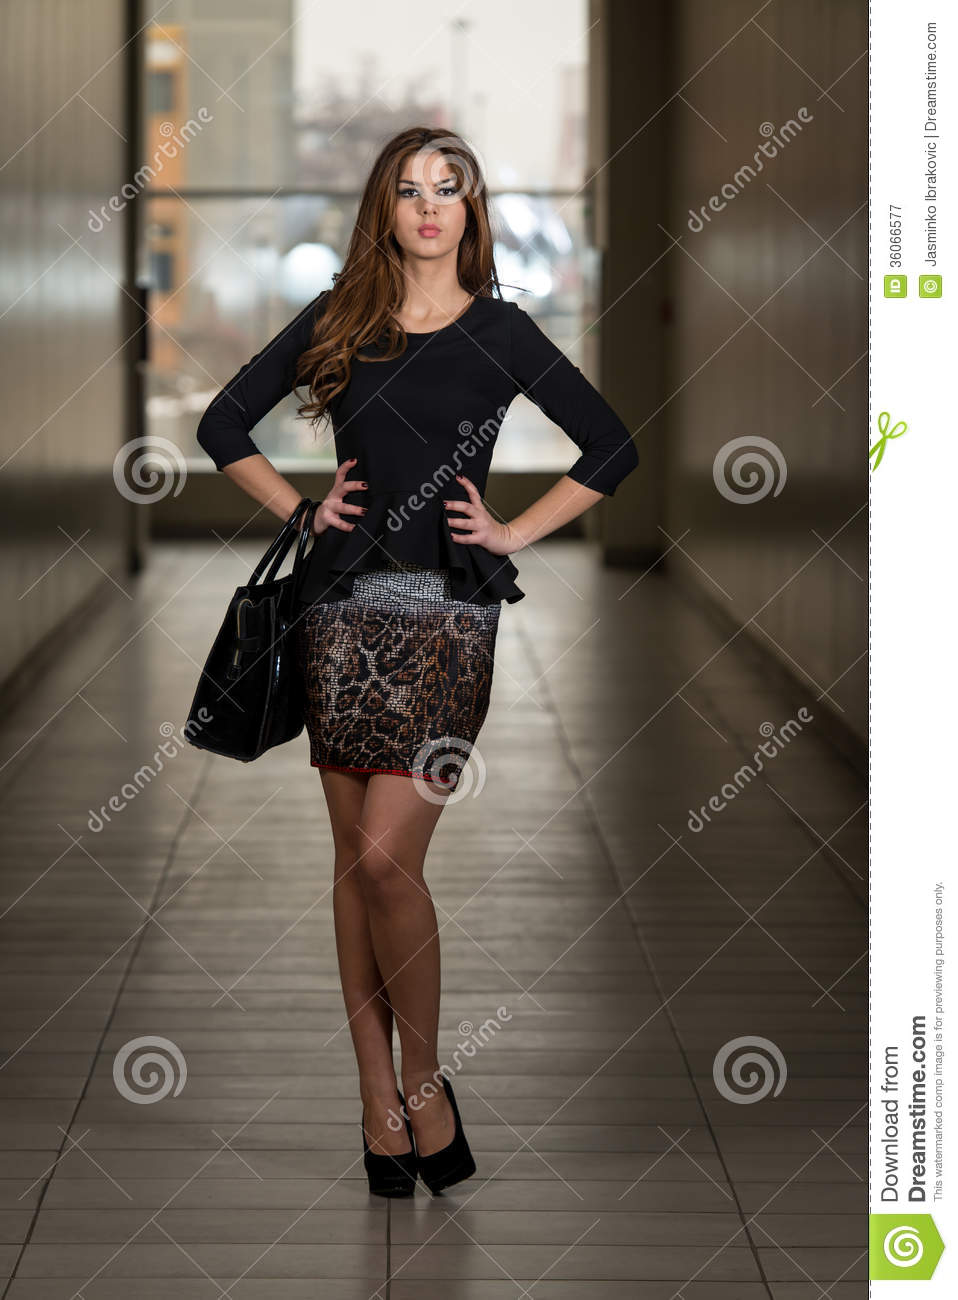 Business Woman At The Shopping Mall Royalty Free Stock Photography Image 36066577